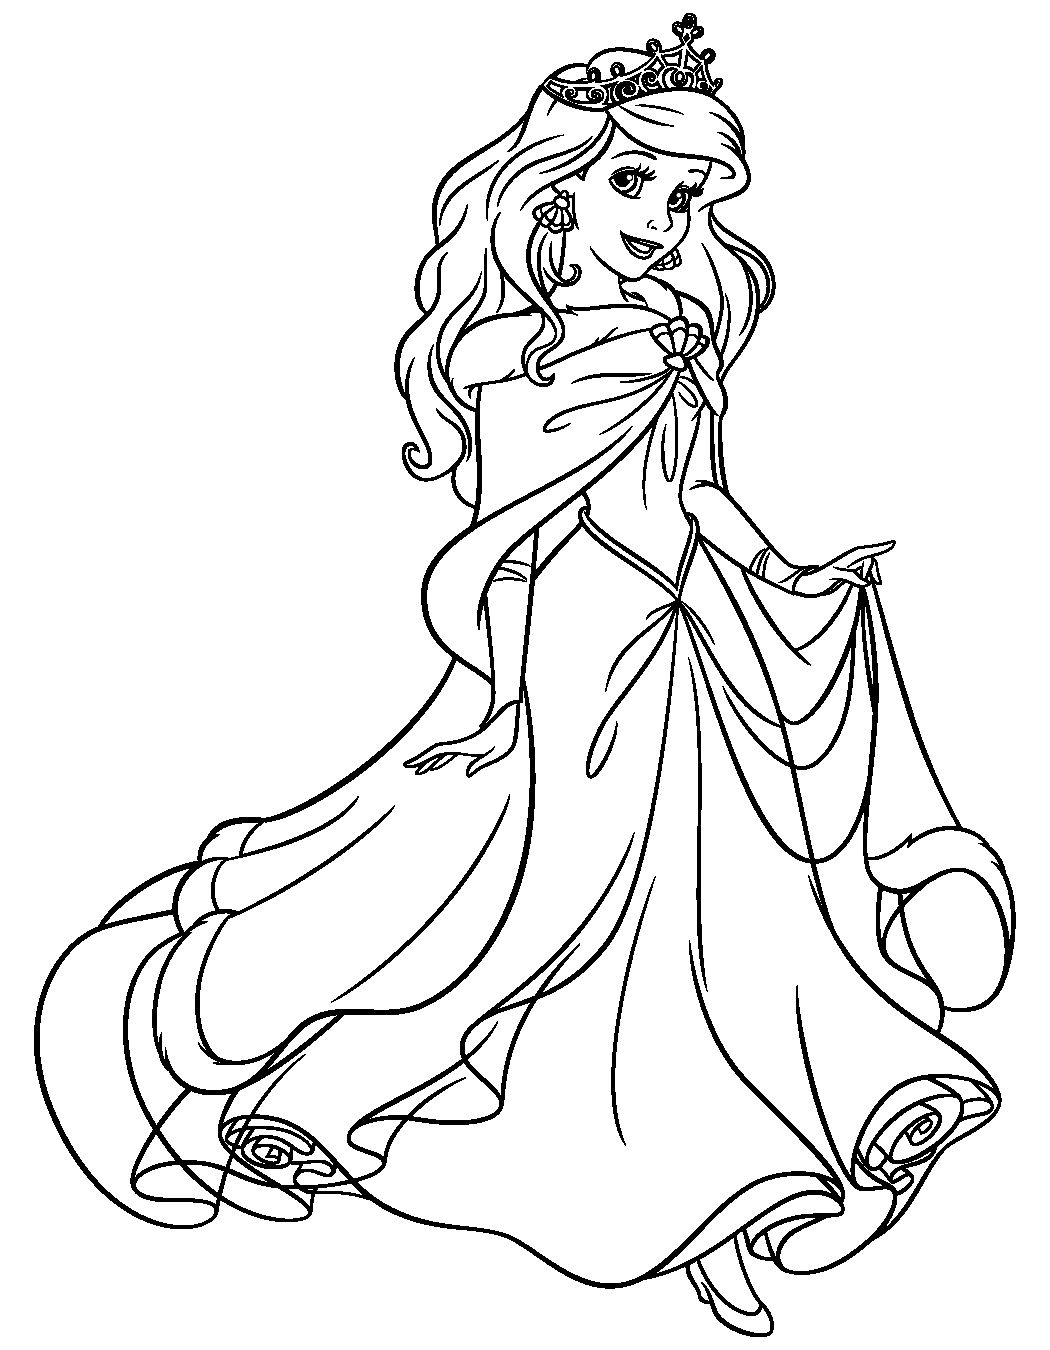 Disney Princess Ariel Coloring Pages Inspirational Pin By Nal Nal On Colouring In 2020 Ariel Coloring Pages Mermaid Coloring Pages Mermaid Coloring